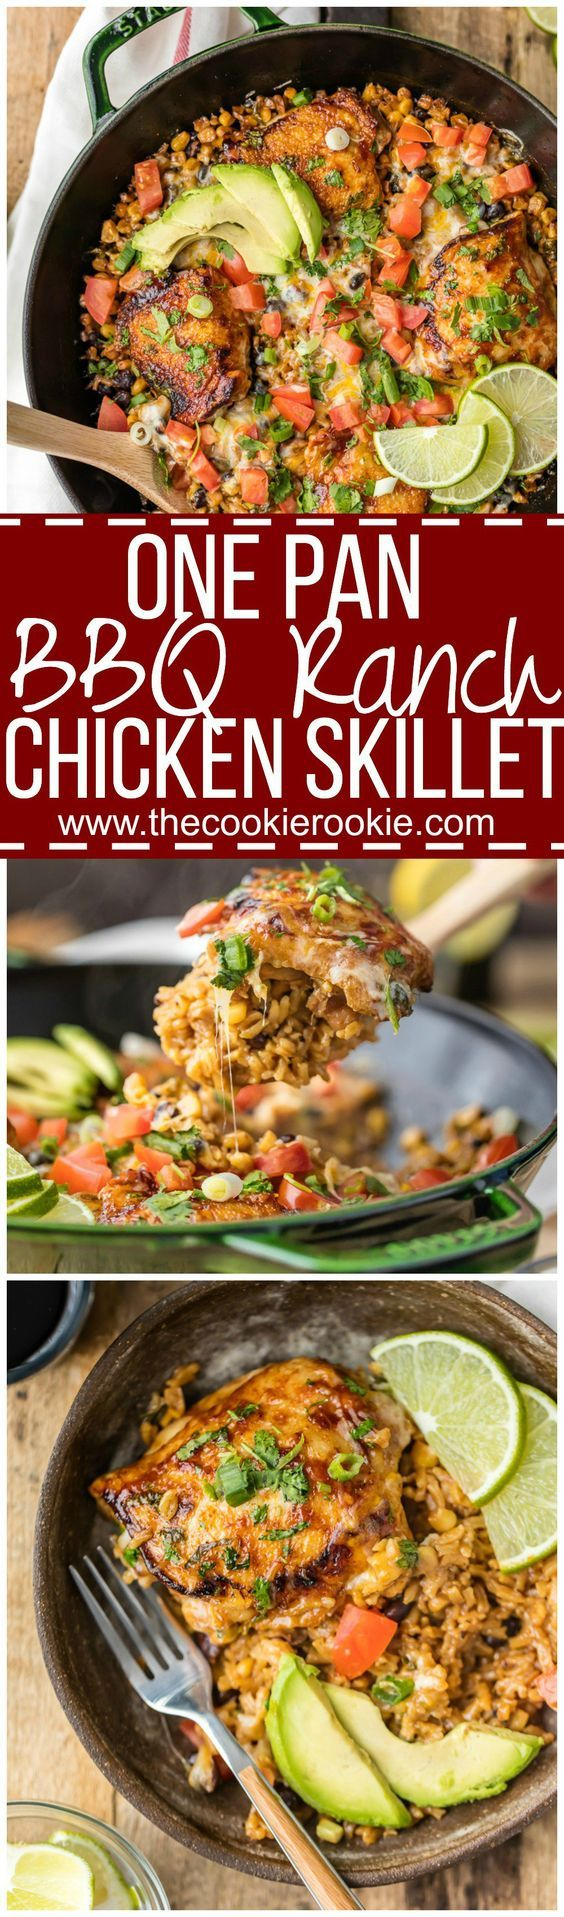 ONE PAN BBQ RANCH CHICKEN SKILLET, the perfect easy recipe for families! Best weeknight meal packed with cheese, corn, beans, chicken, cilantro, RANCH, and bbq sauce! MADE IN ONE POT! @hvranch  @walmart spon